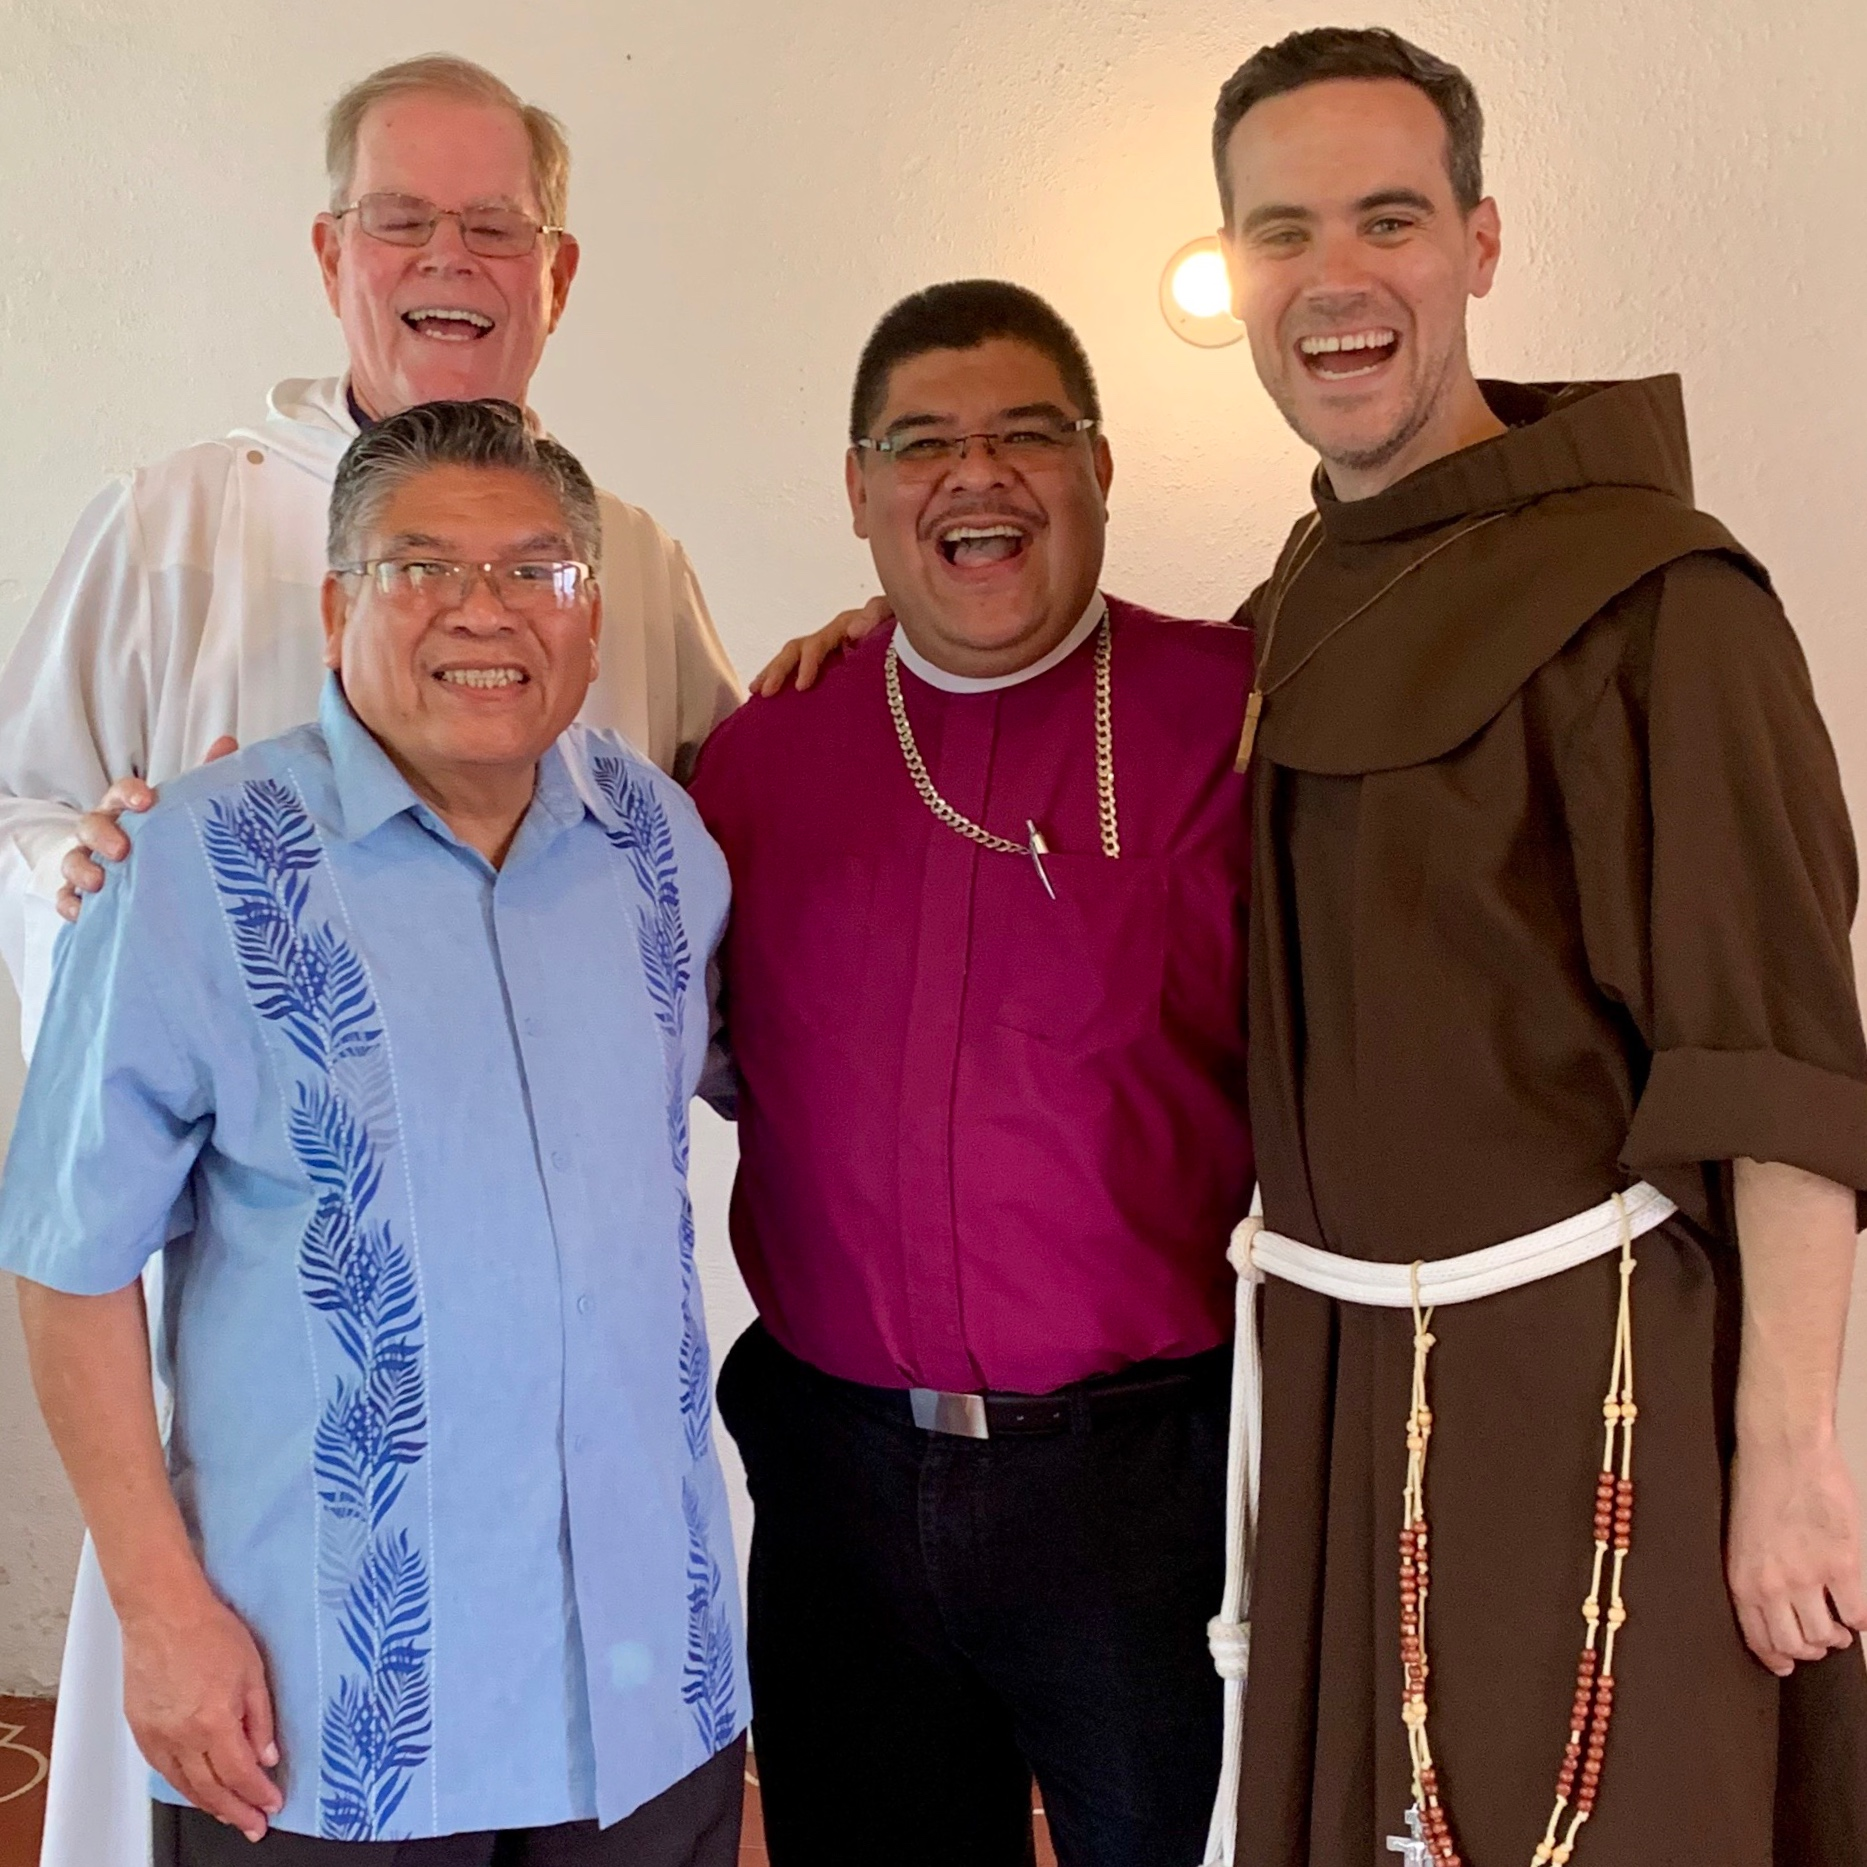 During the Episcopal Visitation to St. Albans Episcopal Church in Antigua, Guatemala.  Left to right, Fr. John Smith, Vicar of St Albans Episcopal Church; Bishop Sylvestre Romero, ret. Bishop of Belize and former Assisting Bishop of New Jersey, to Bishop George Councell; Bishop Silvestre Romero, Bishop of Guatemala (and son of Bishop Sylvestre Romero).